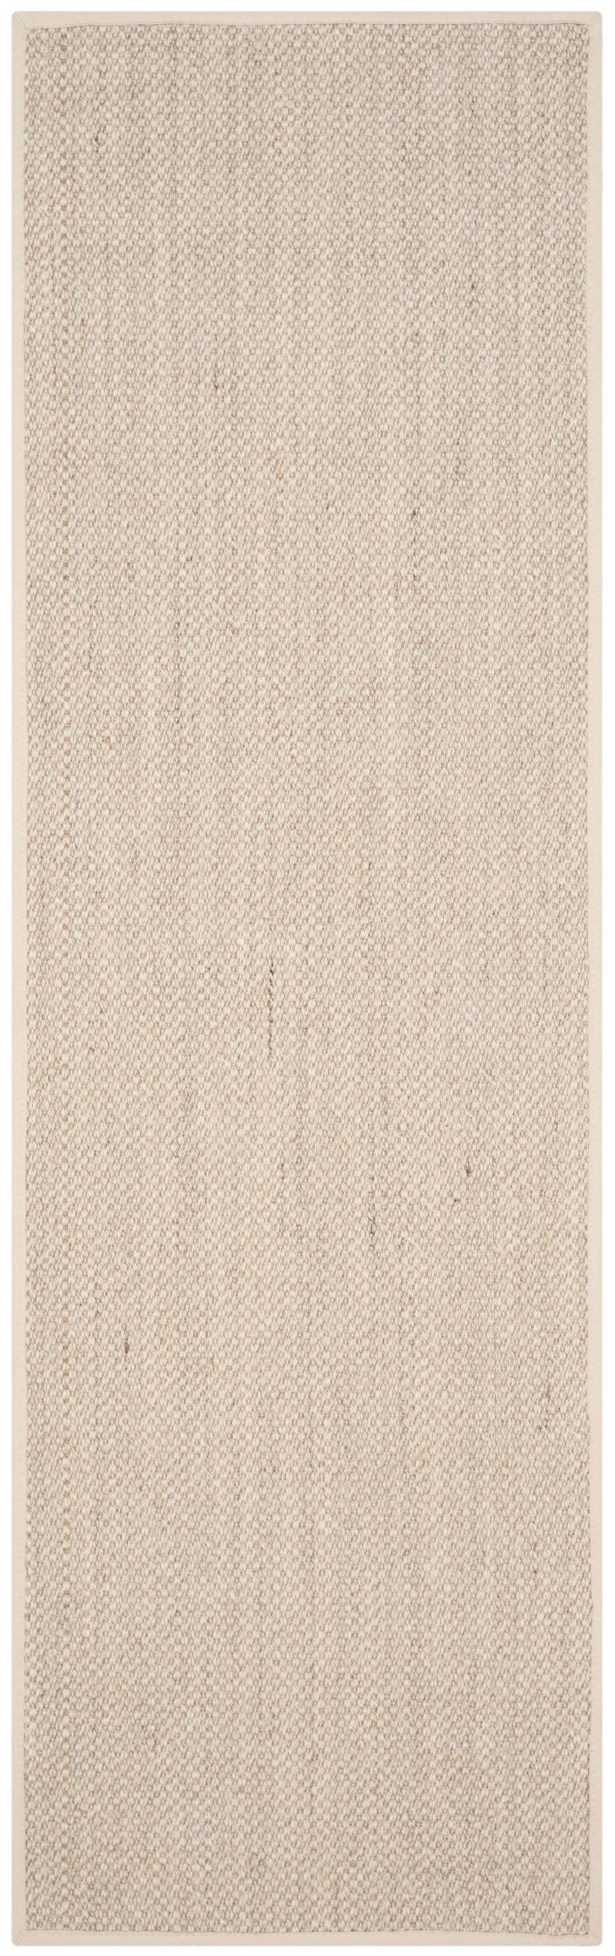 Tallowick Marble/Beige Area Rug Rug Size: Runner 2'6